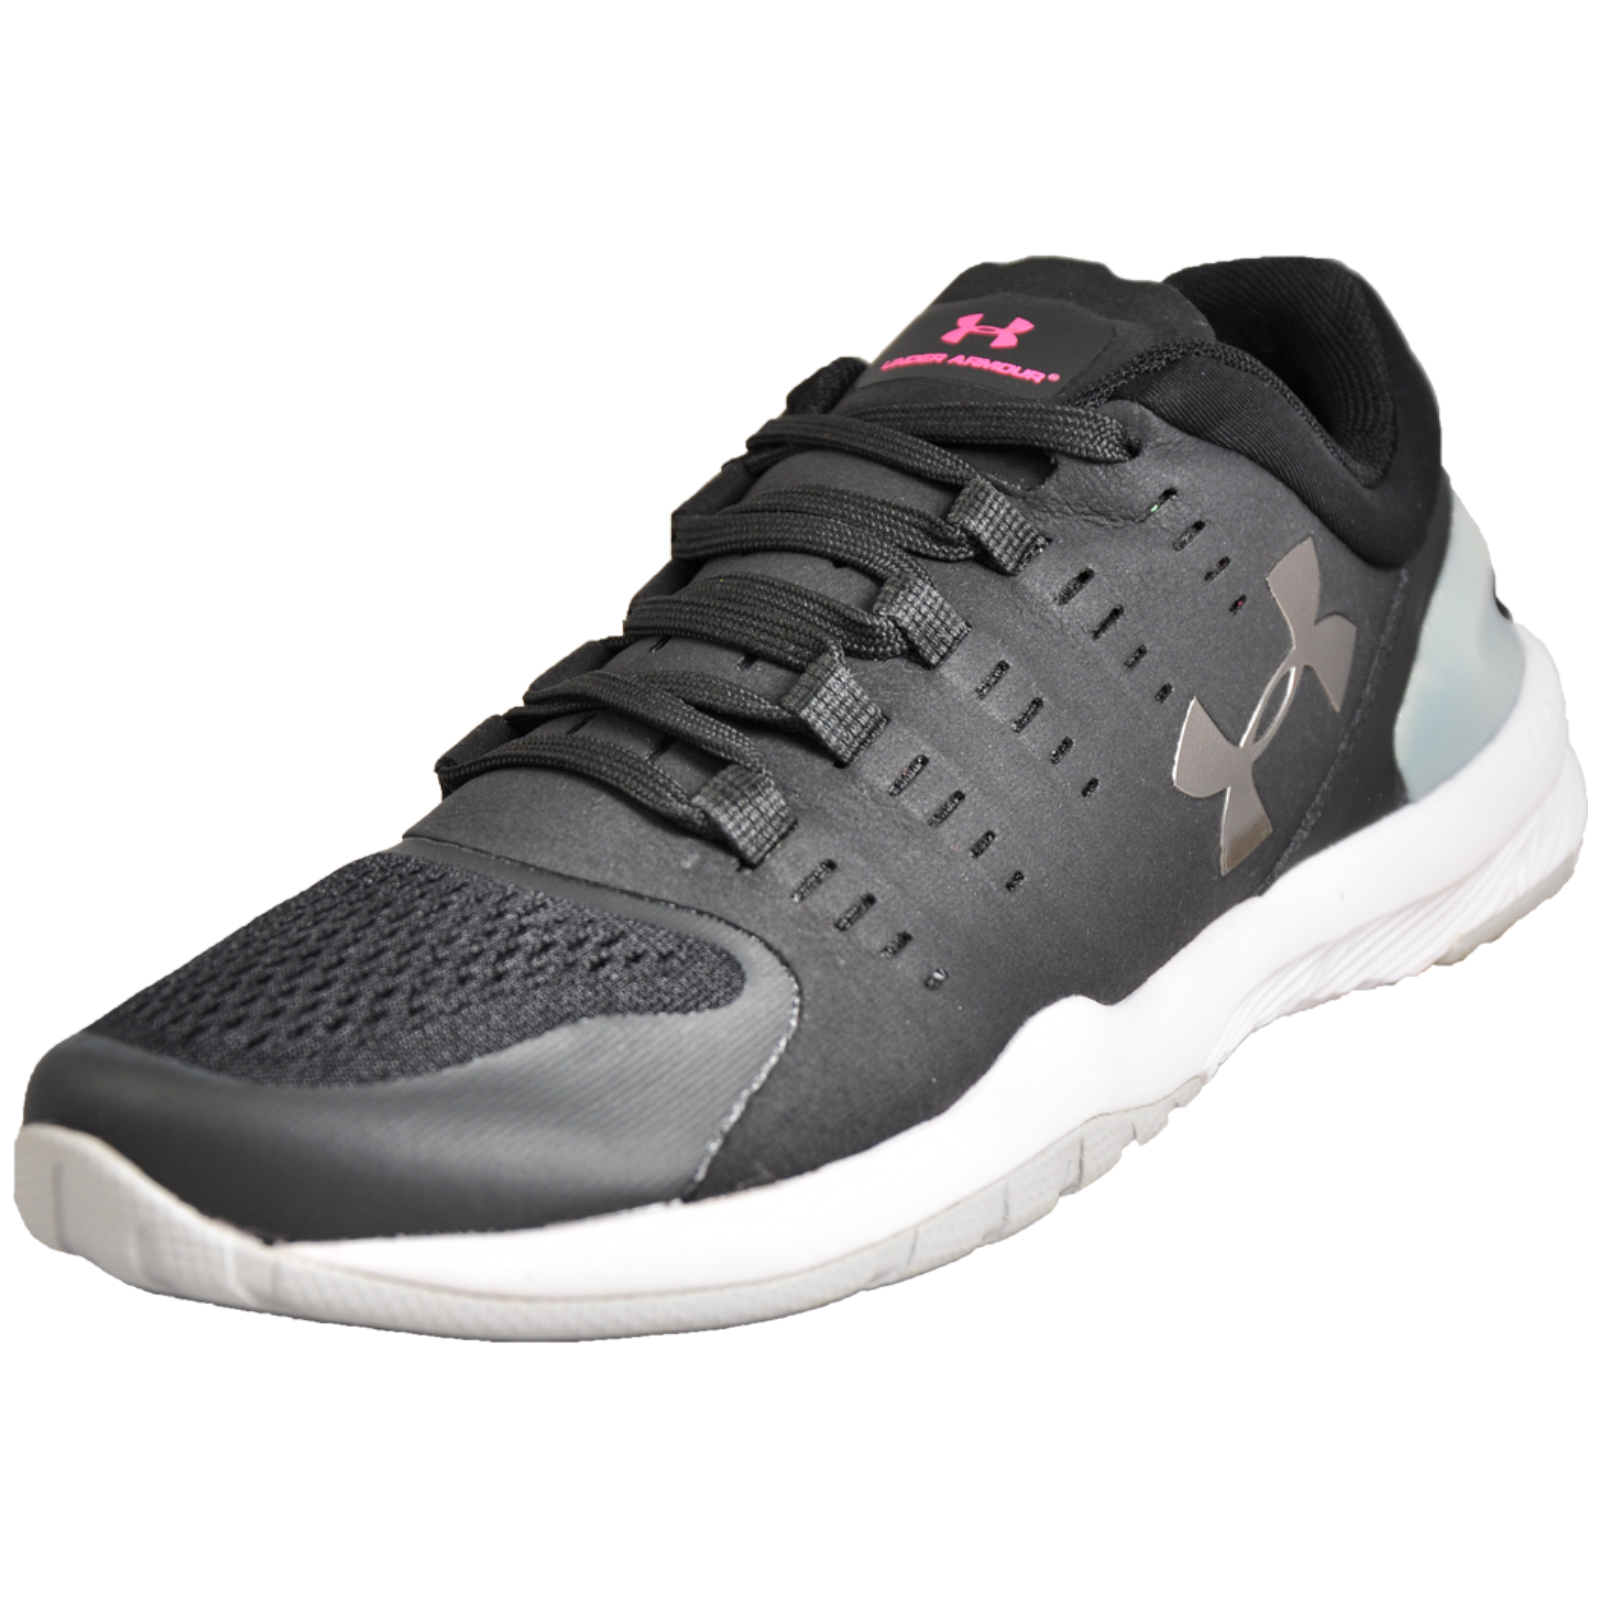 d2a5a06d03d7 Details about Under Armour Charged Stunner Running Shoes Womens Fitness Gym  Trainers Black UK